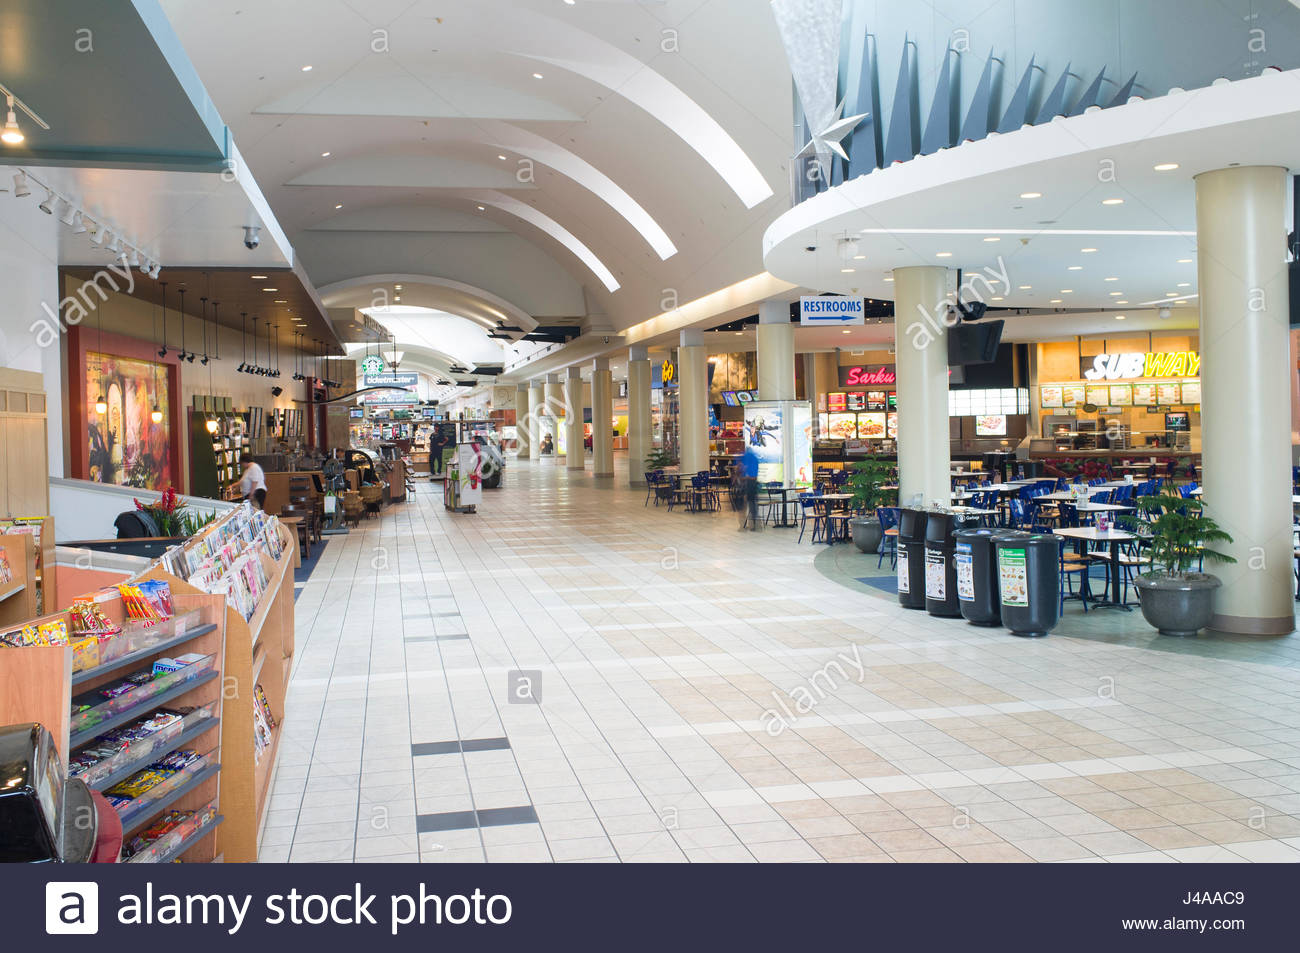 Food Court in Northgate Mall, 401 NE Northgate Way, Seattle Stock